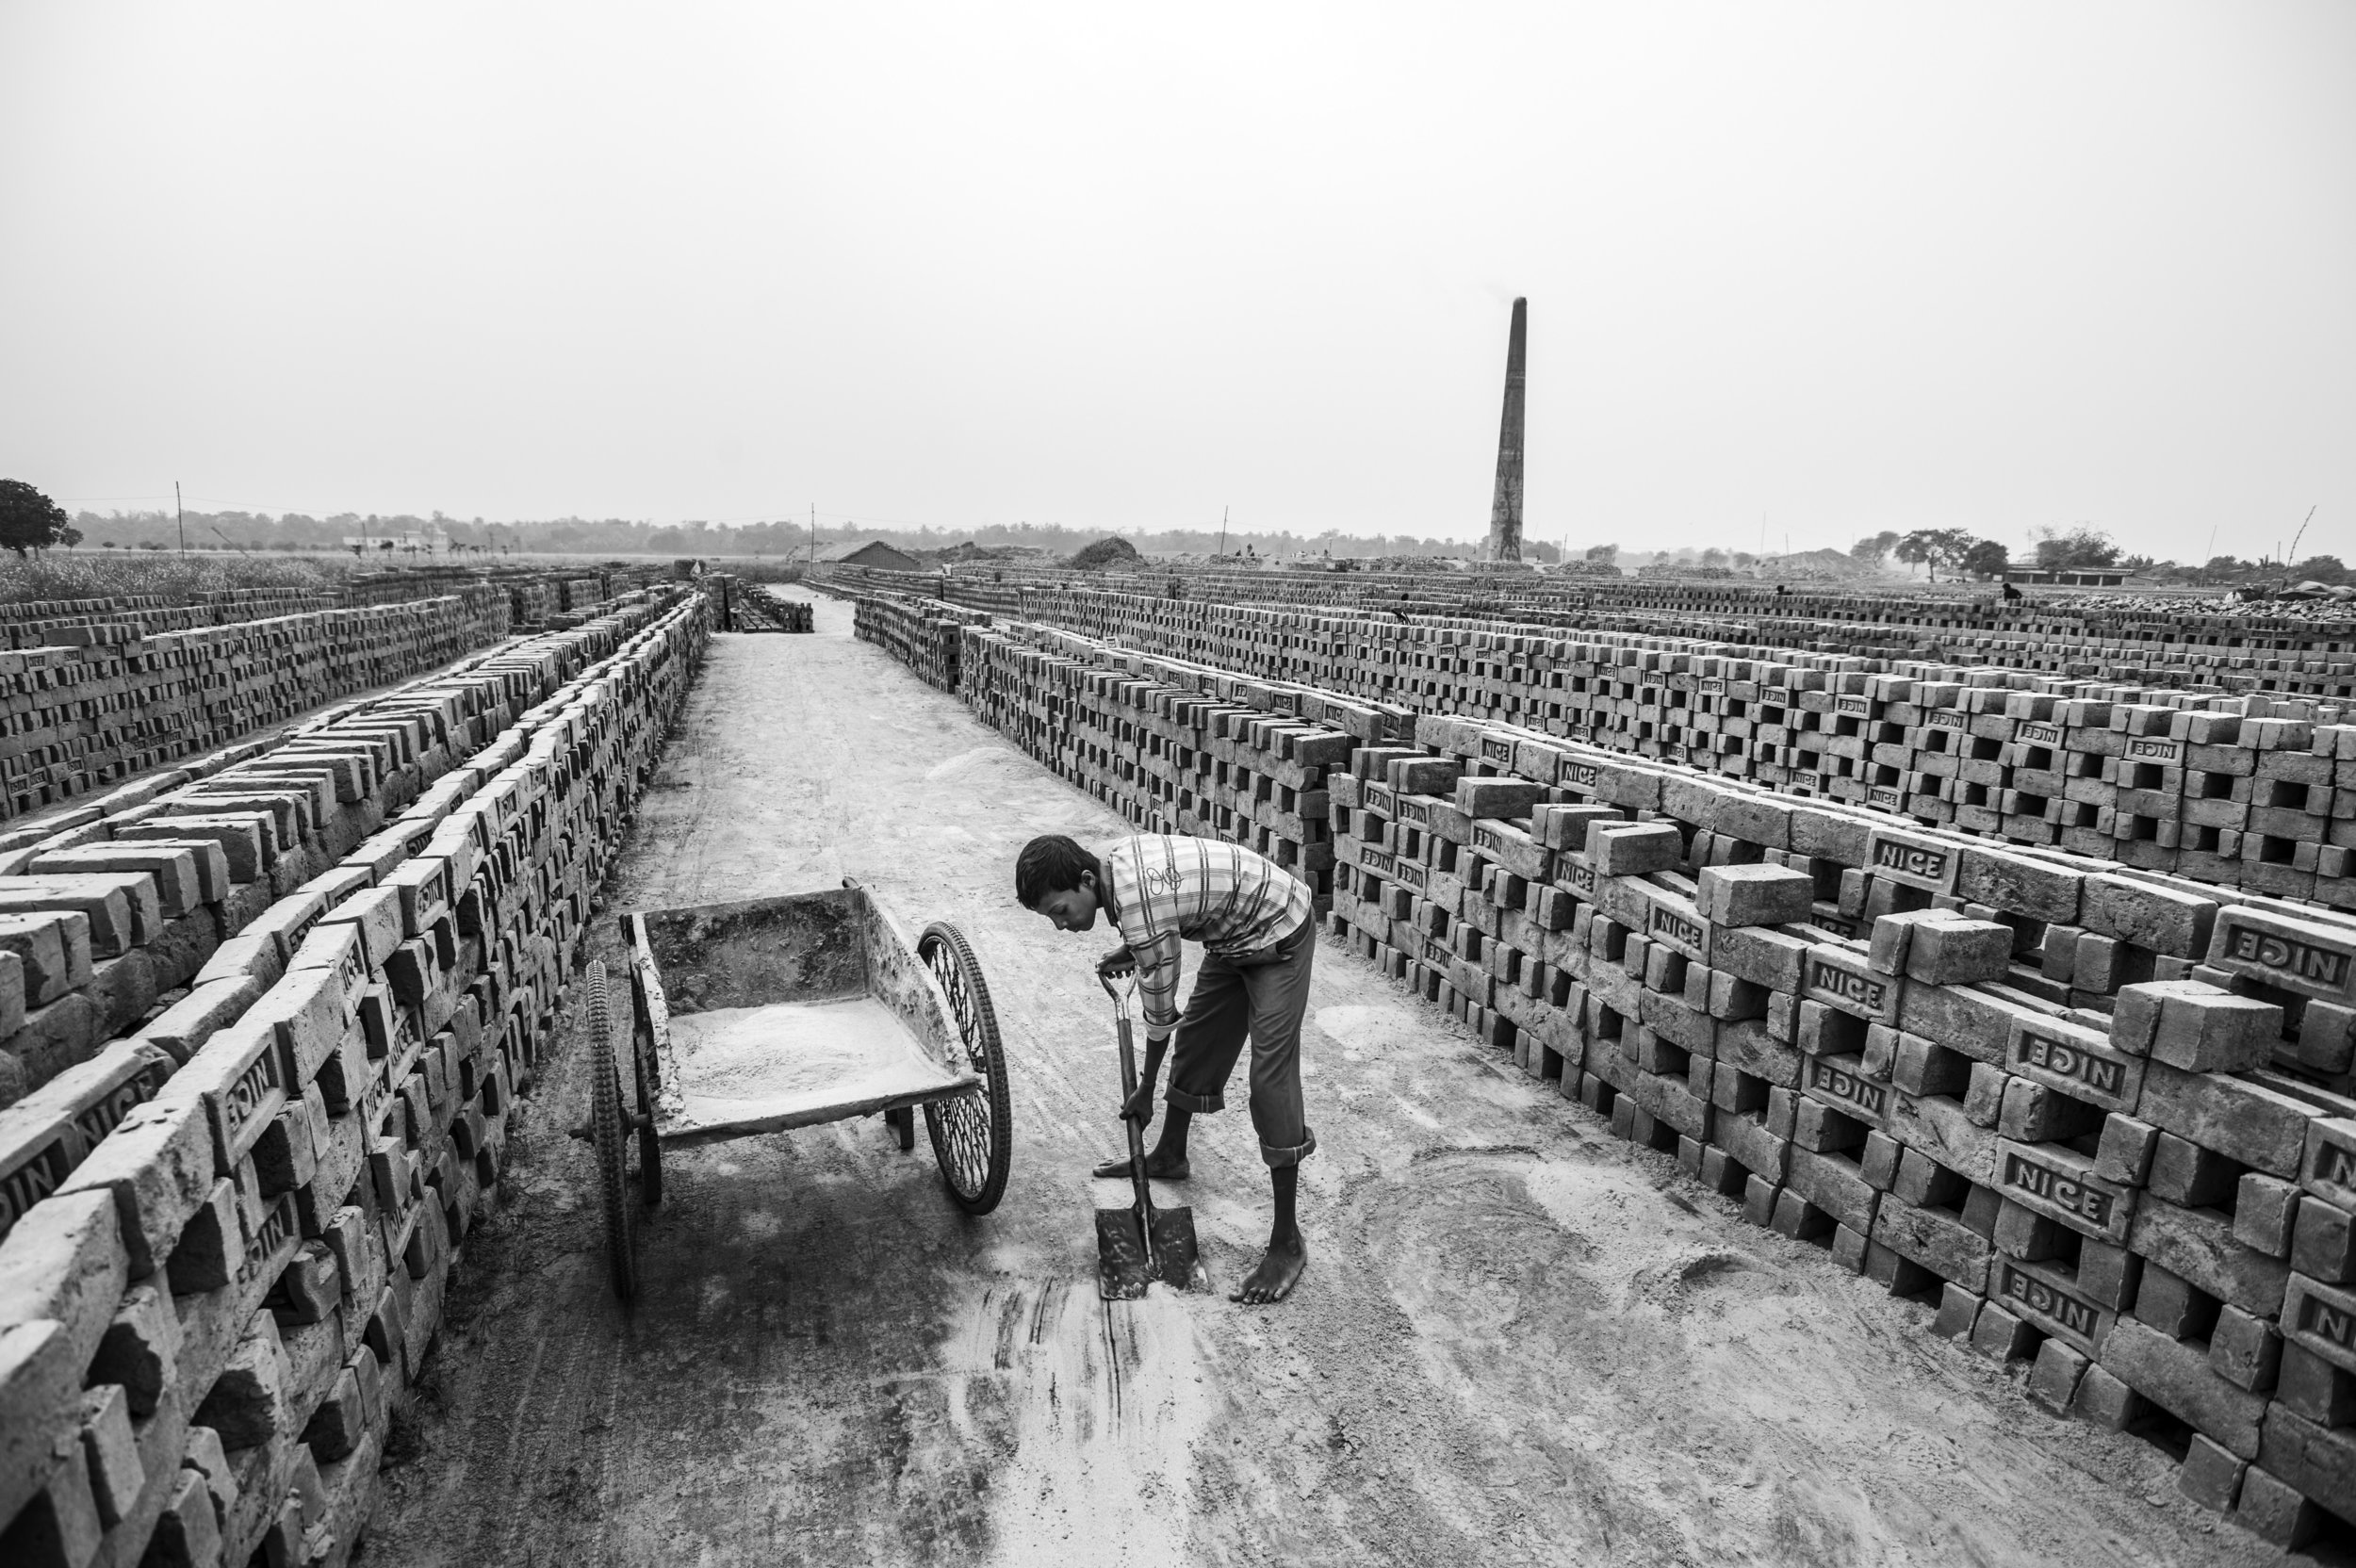 """Bangladesh, Rajshahi, January 2013, Rasel is eleven years old and works at """"Nice"""" brick factory. His work entails shifting and carting sand and mud from one place to another, as well as stacking bricks ."""